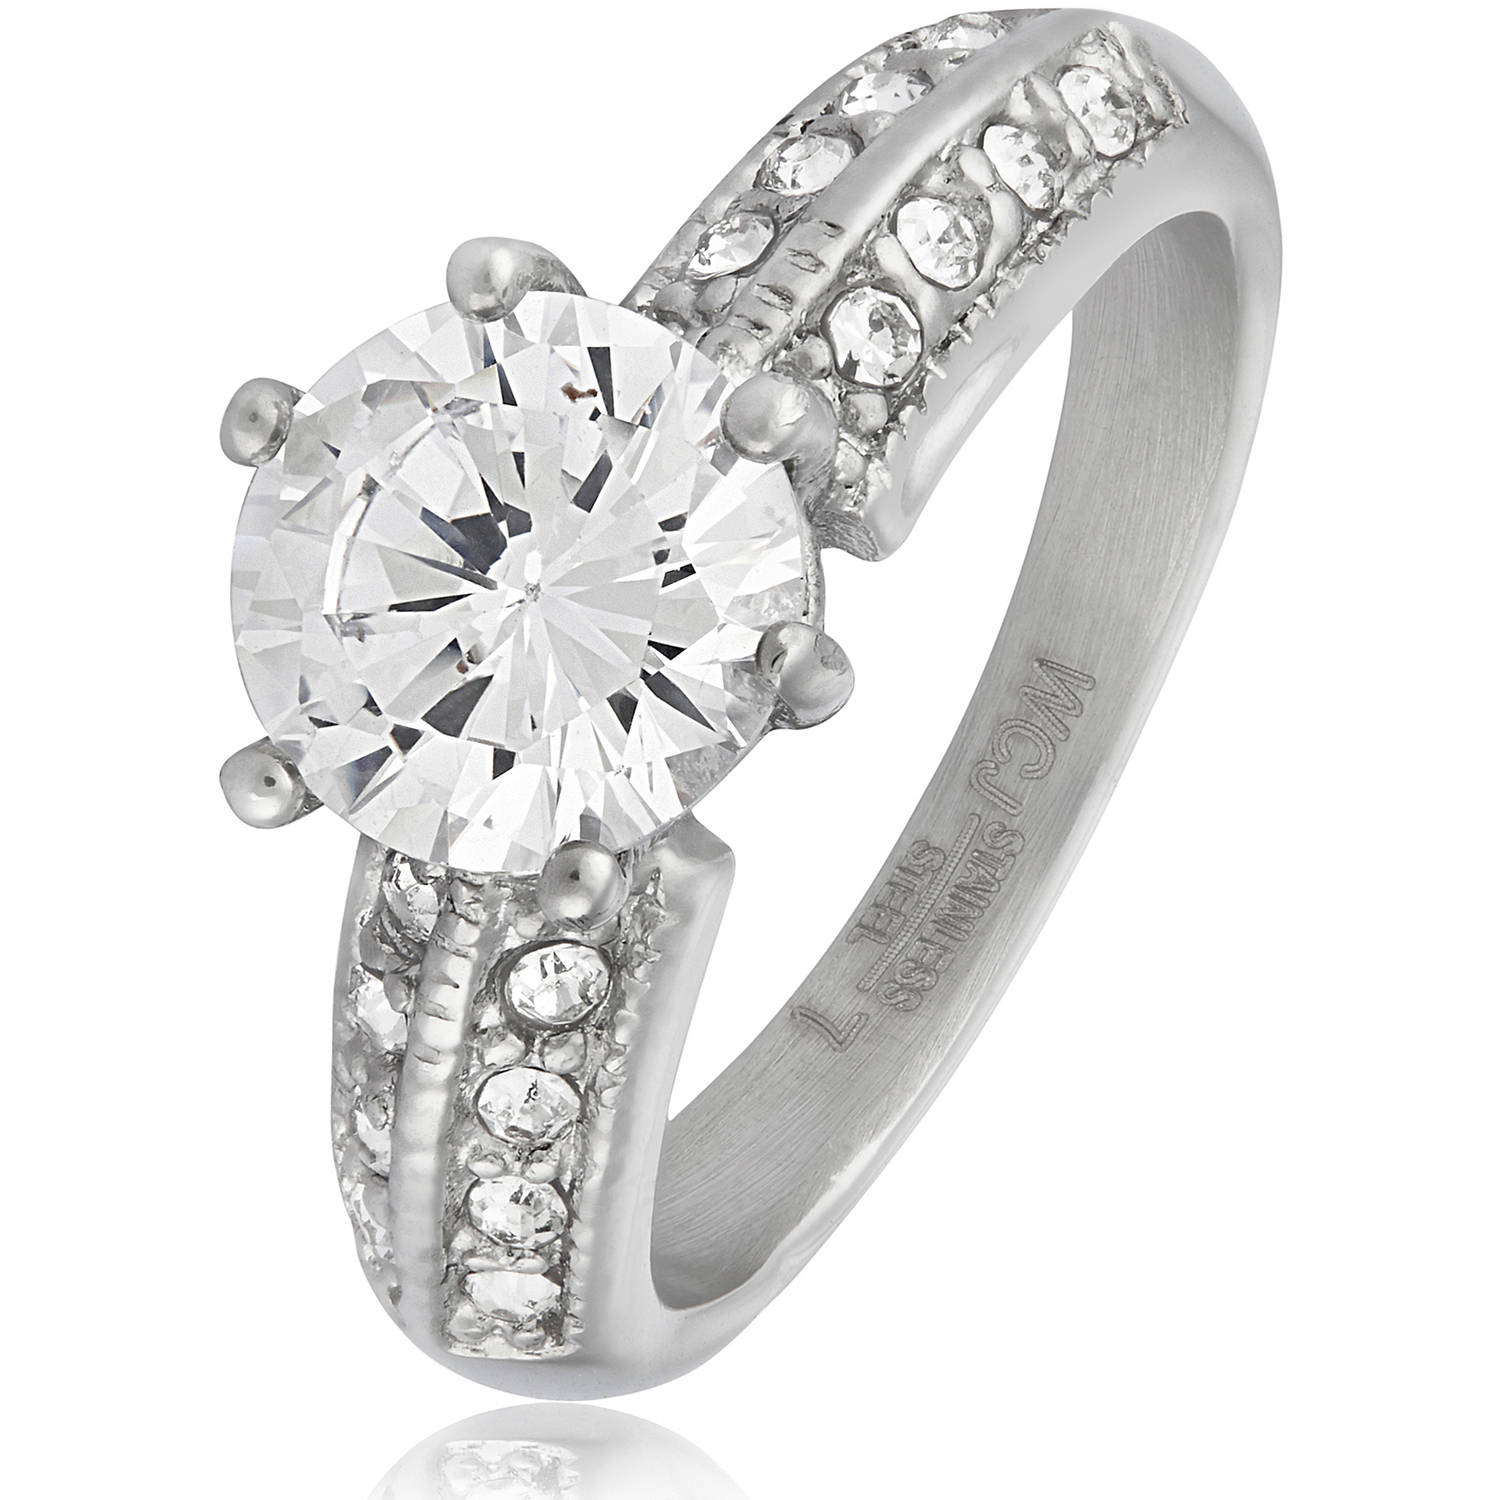 Women's Stainless Steel Polished CZ Band Ring